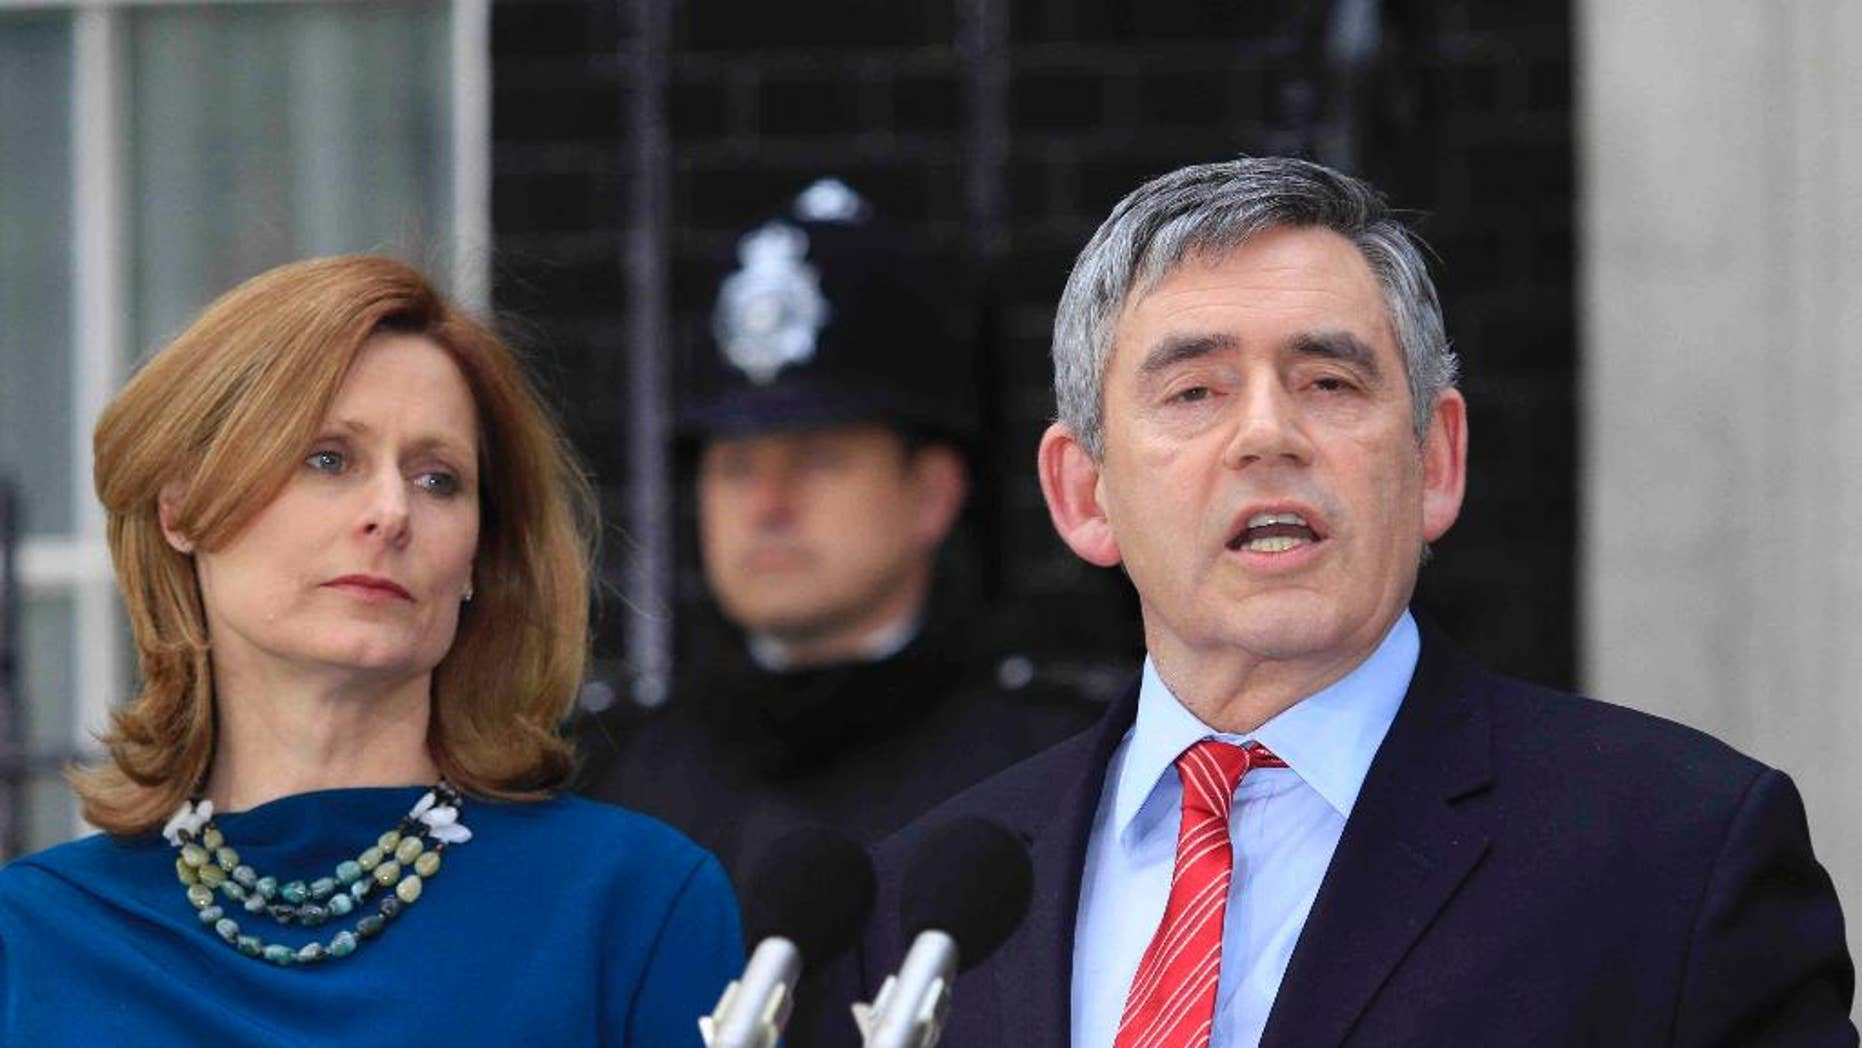 FILE - In this Tuesday May 11, 2010 file photo, Britain's Prime Minister Gordon Brown, accompanied by his wife Sarah, announces his resignation outside his official residence at No. 10 Downing Street in central London. Rivals and allies are paying tribute to former British Prime Minister Gordon Brown, who plans to step down from Parliament at a national election in May. Brown is due to make a speech Monday Dec. 1, 2014 in his home town of Kirkcaldy, Scotland. British media say he will announce he is leaving Parliament after 32 years.  (AP Photo/Lefteris Pitarakis, File)